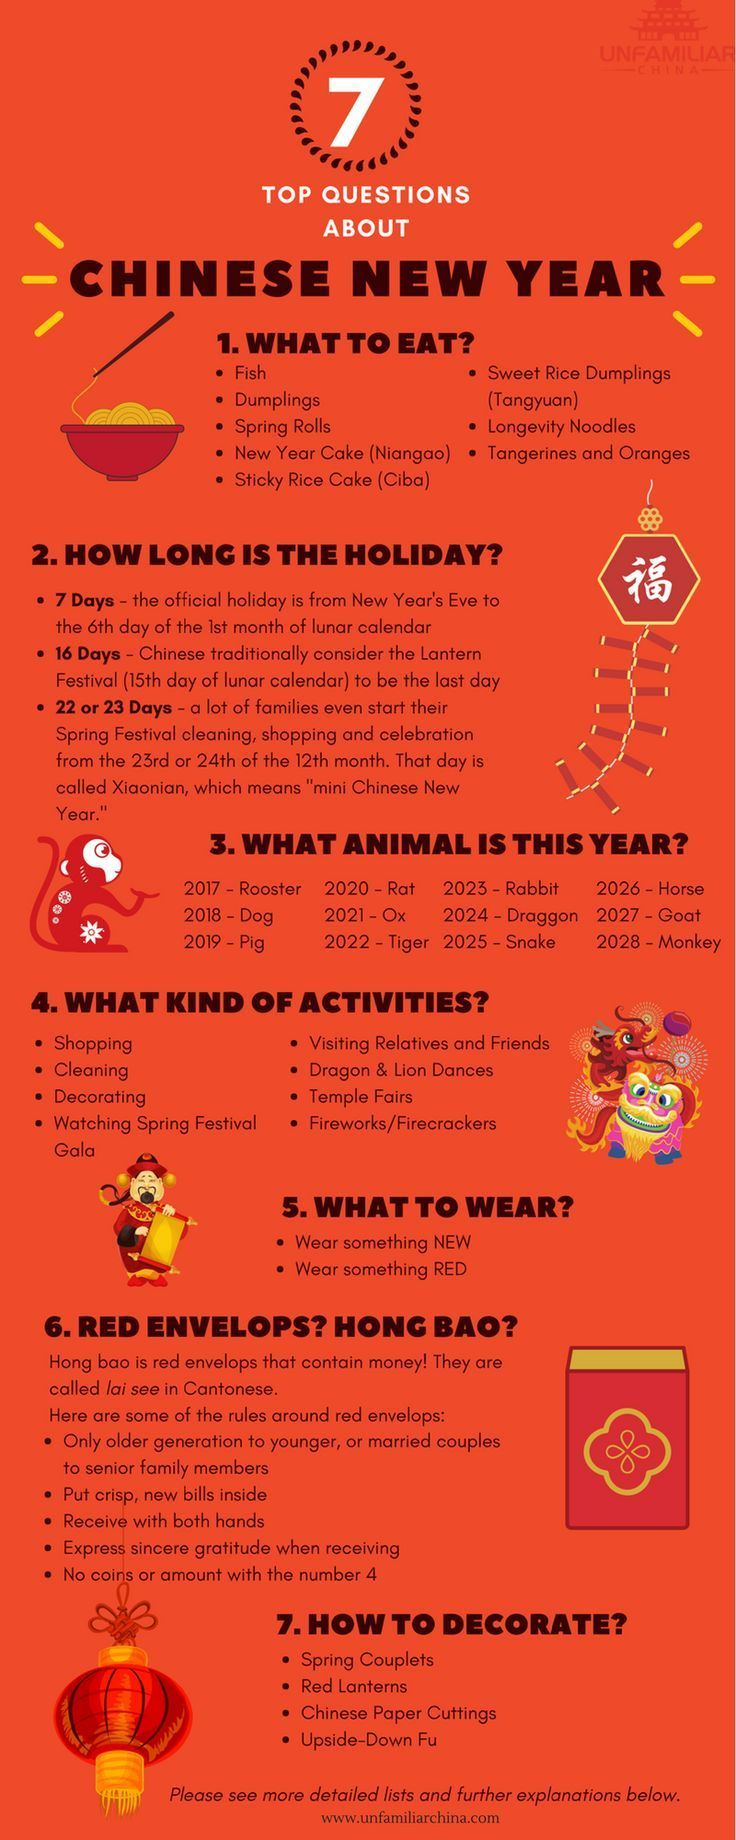 Top 7 Questions About Chinese New Year In 2020 Chinese New Year Crafts For Kids Chinese New Year Traditions Chinese New Year Crafts